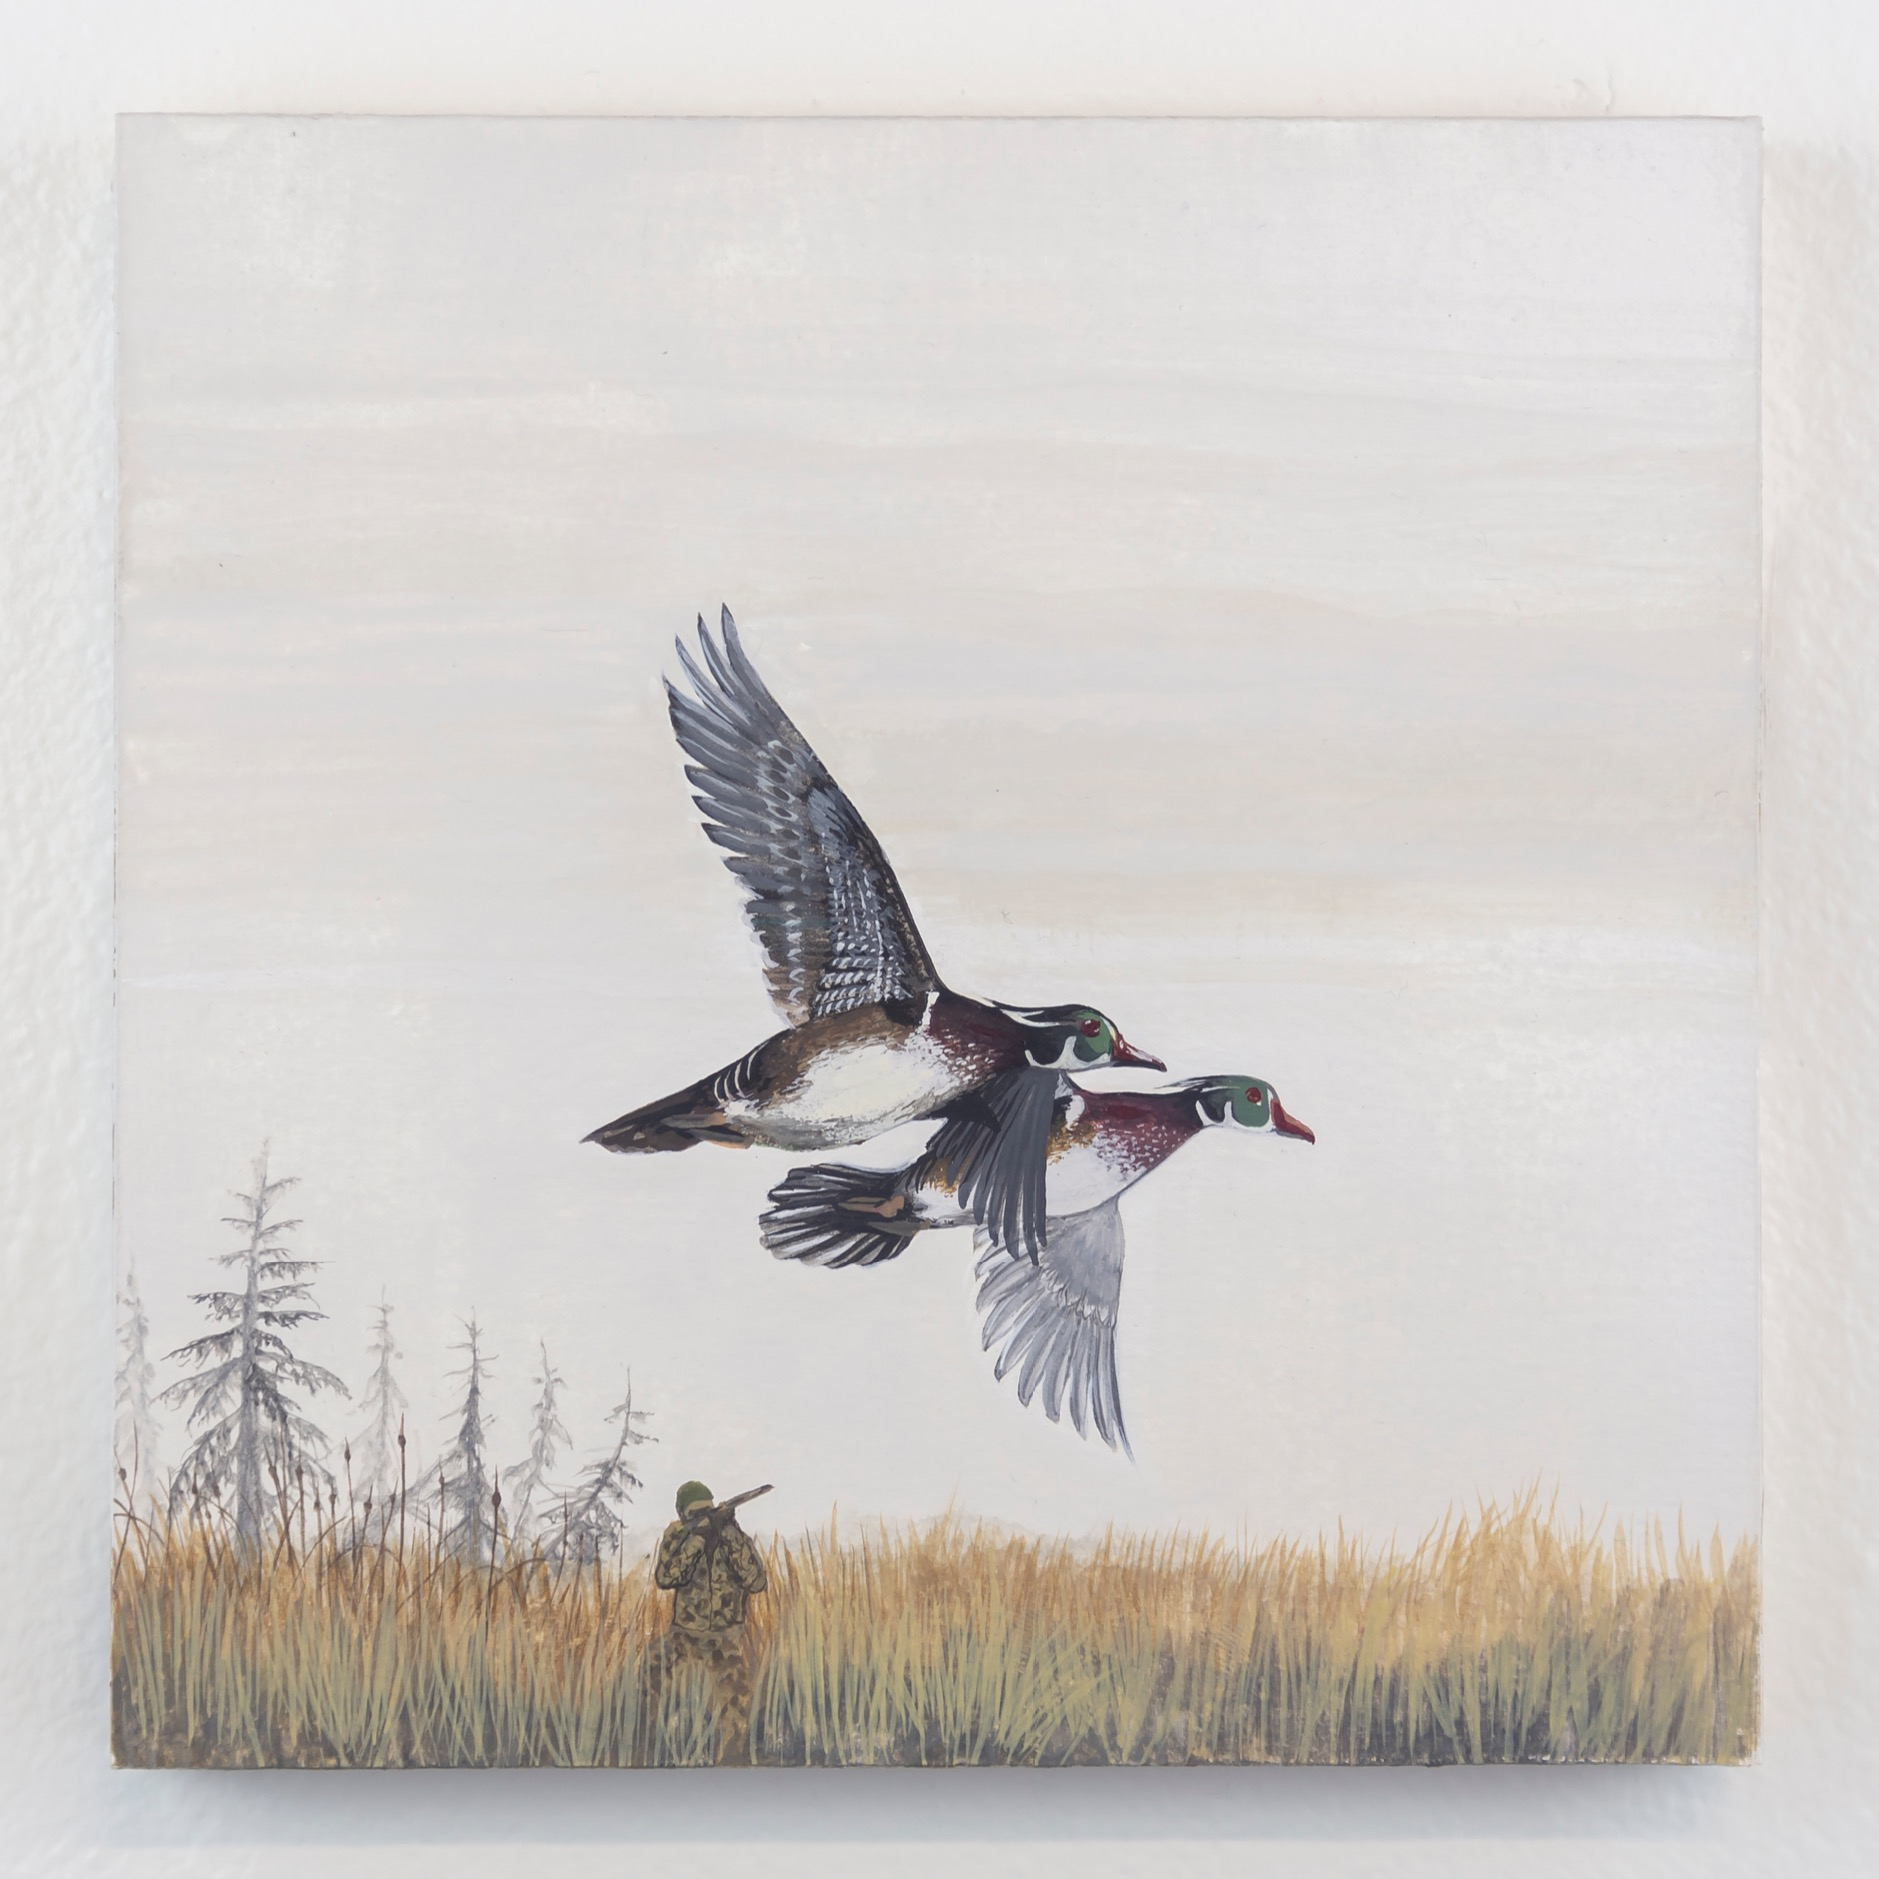 Duck Hunting Series, no. 2